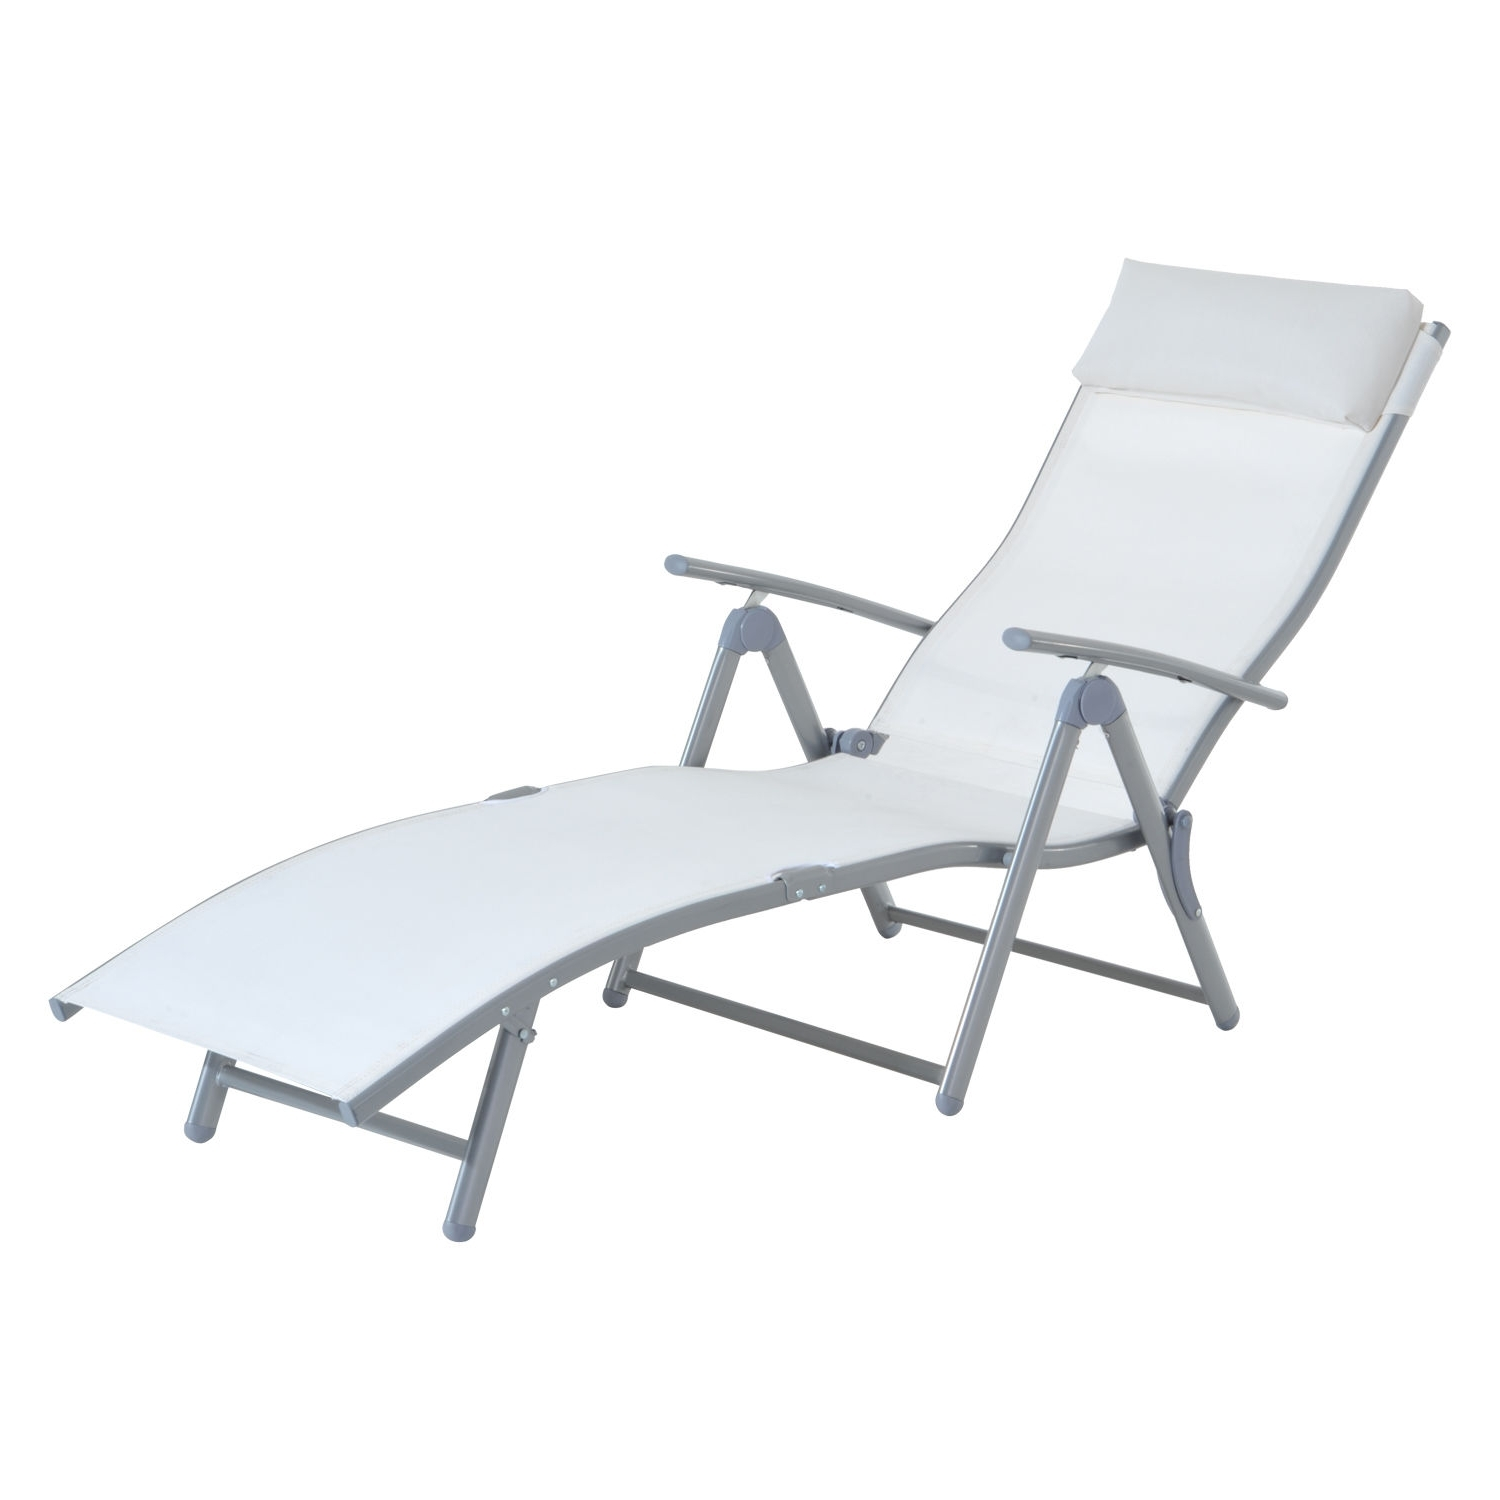 Outdoor : Lowes Chaise Lounge Indoor Outdoor Chaise Lounge Chairs For Most Recently Released Chaise Lounge Strap Chairs (View 8 of 15)